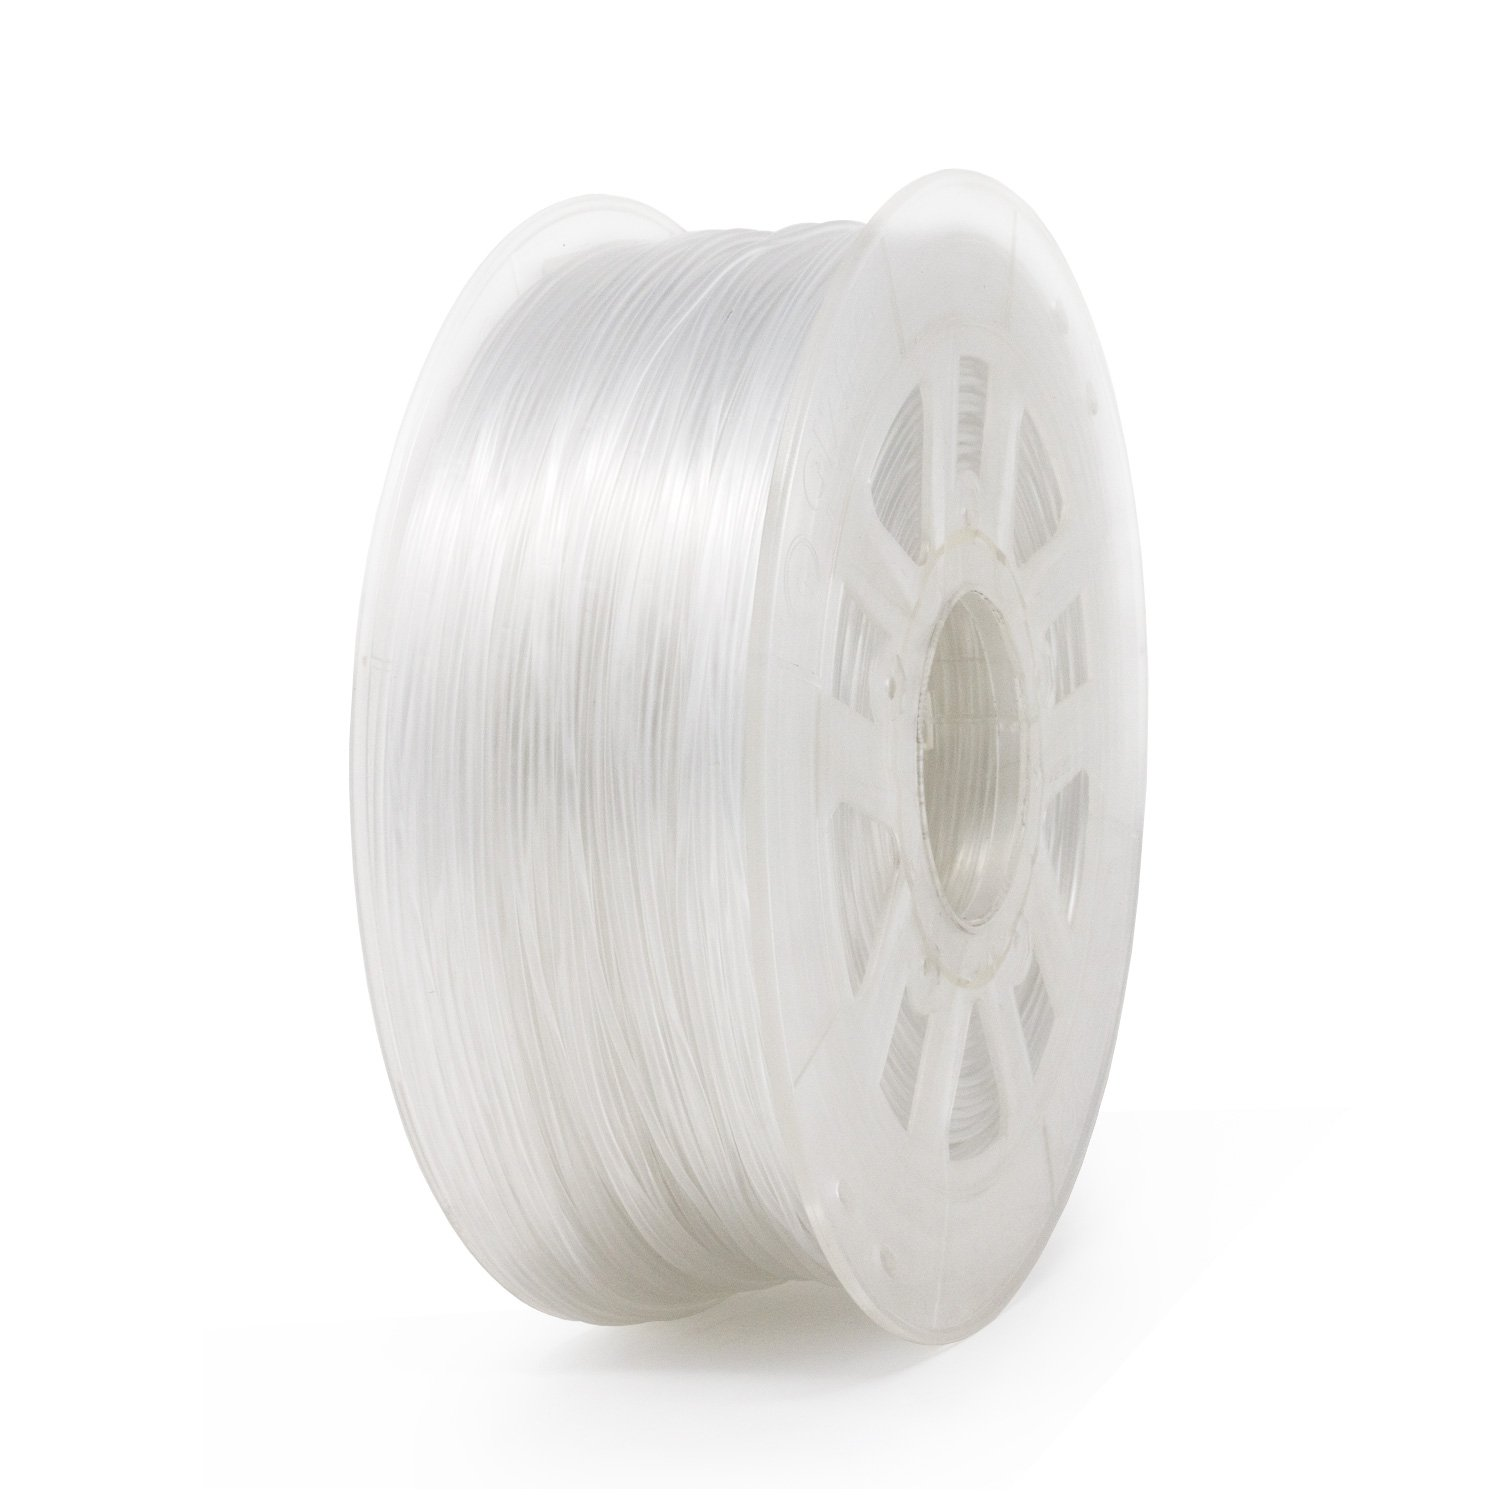 Gizmo Dorks 1 75mm PLA Filament 1kg / 2 2lb for 3D Printers, Transparent